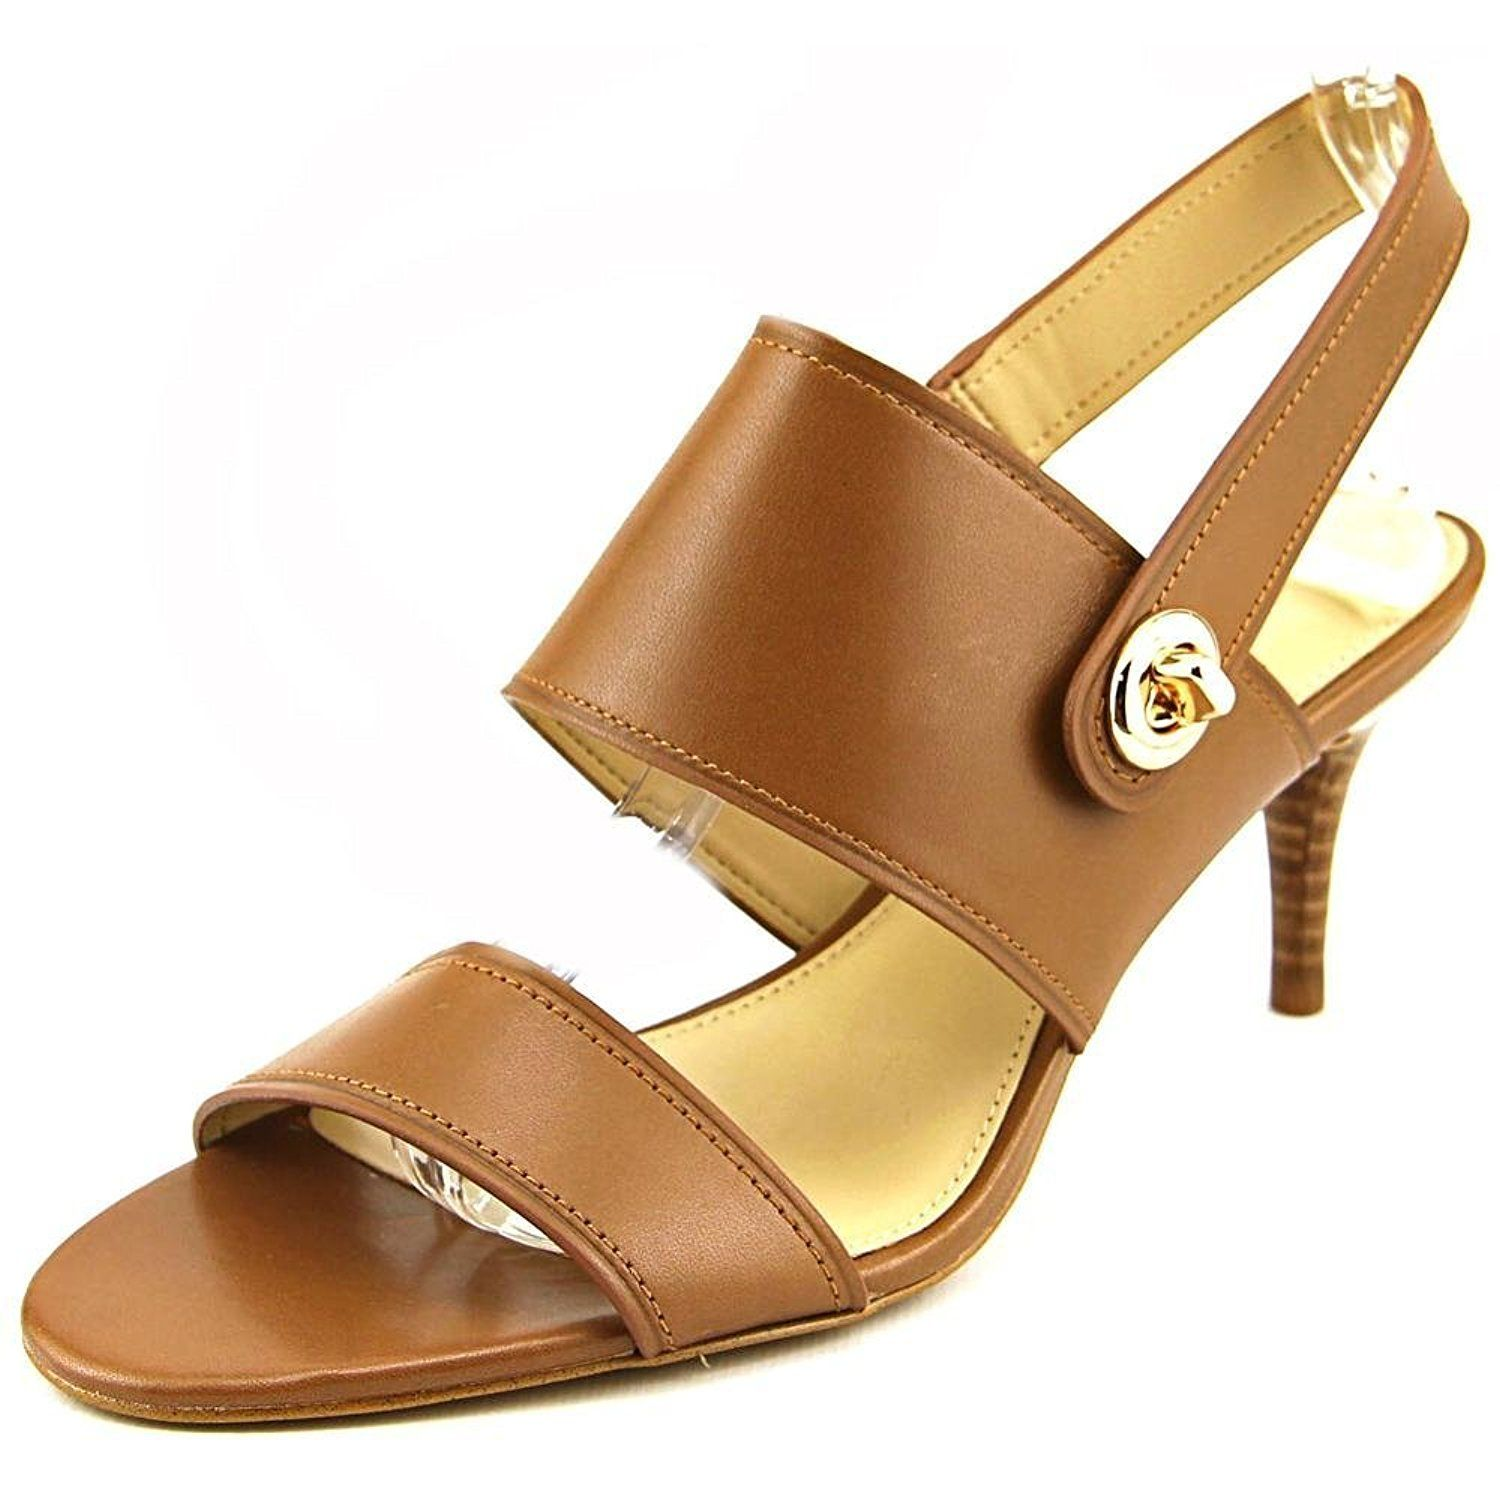 COACH LINK LEATHER DRESS SANDALS